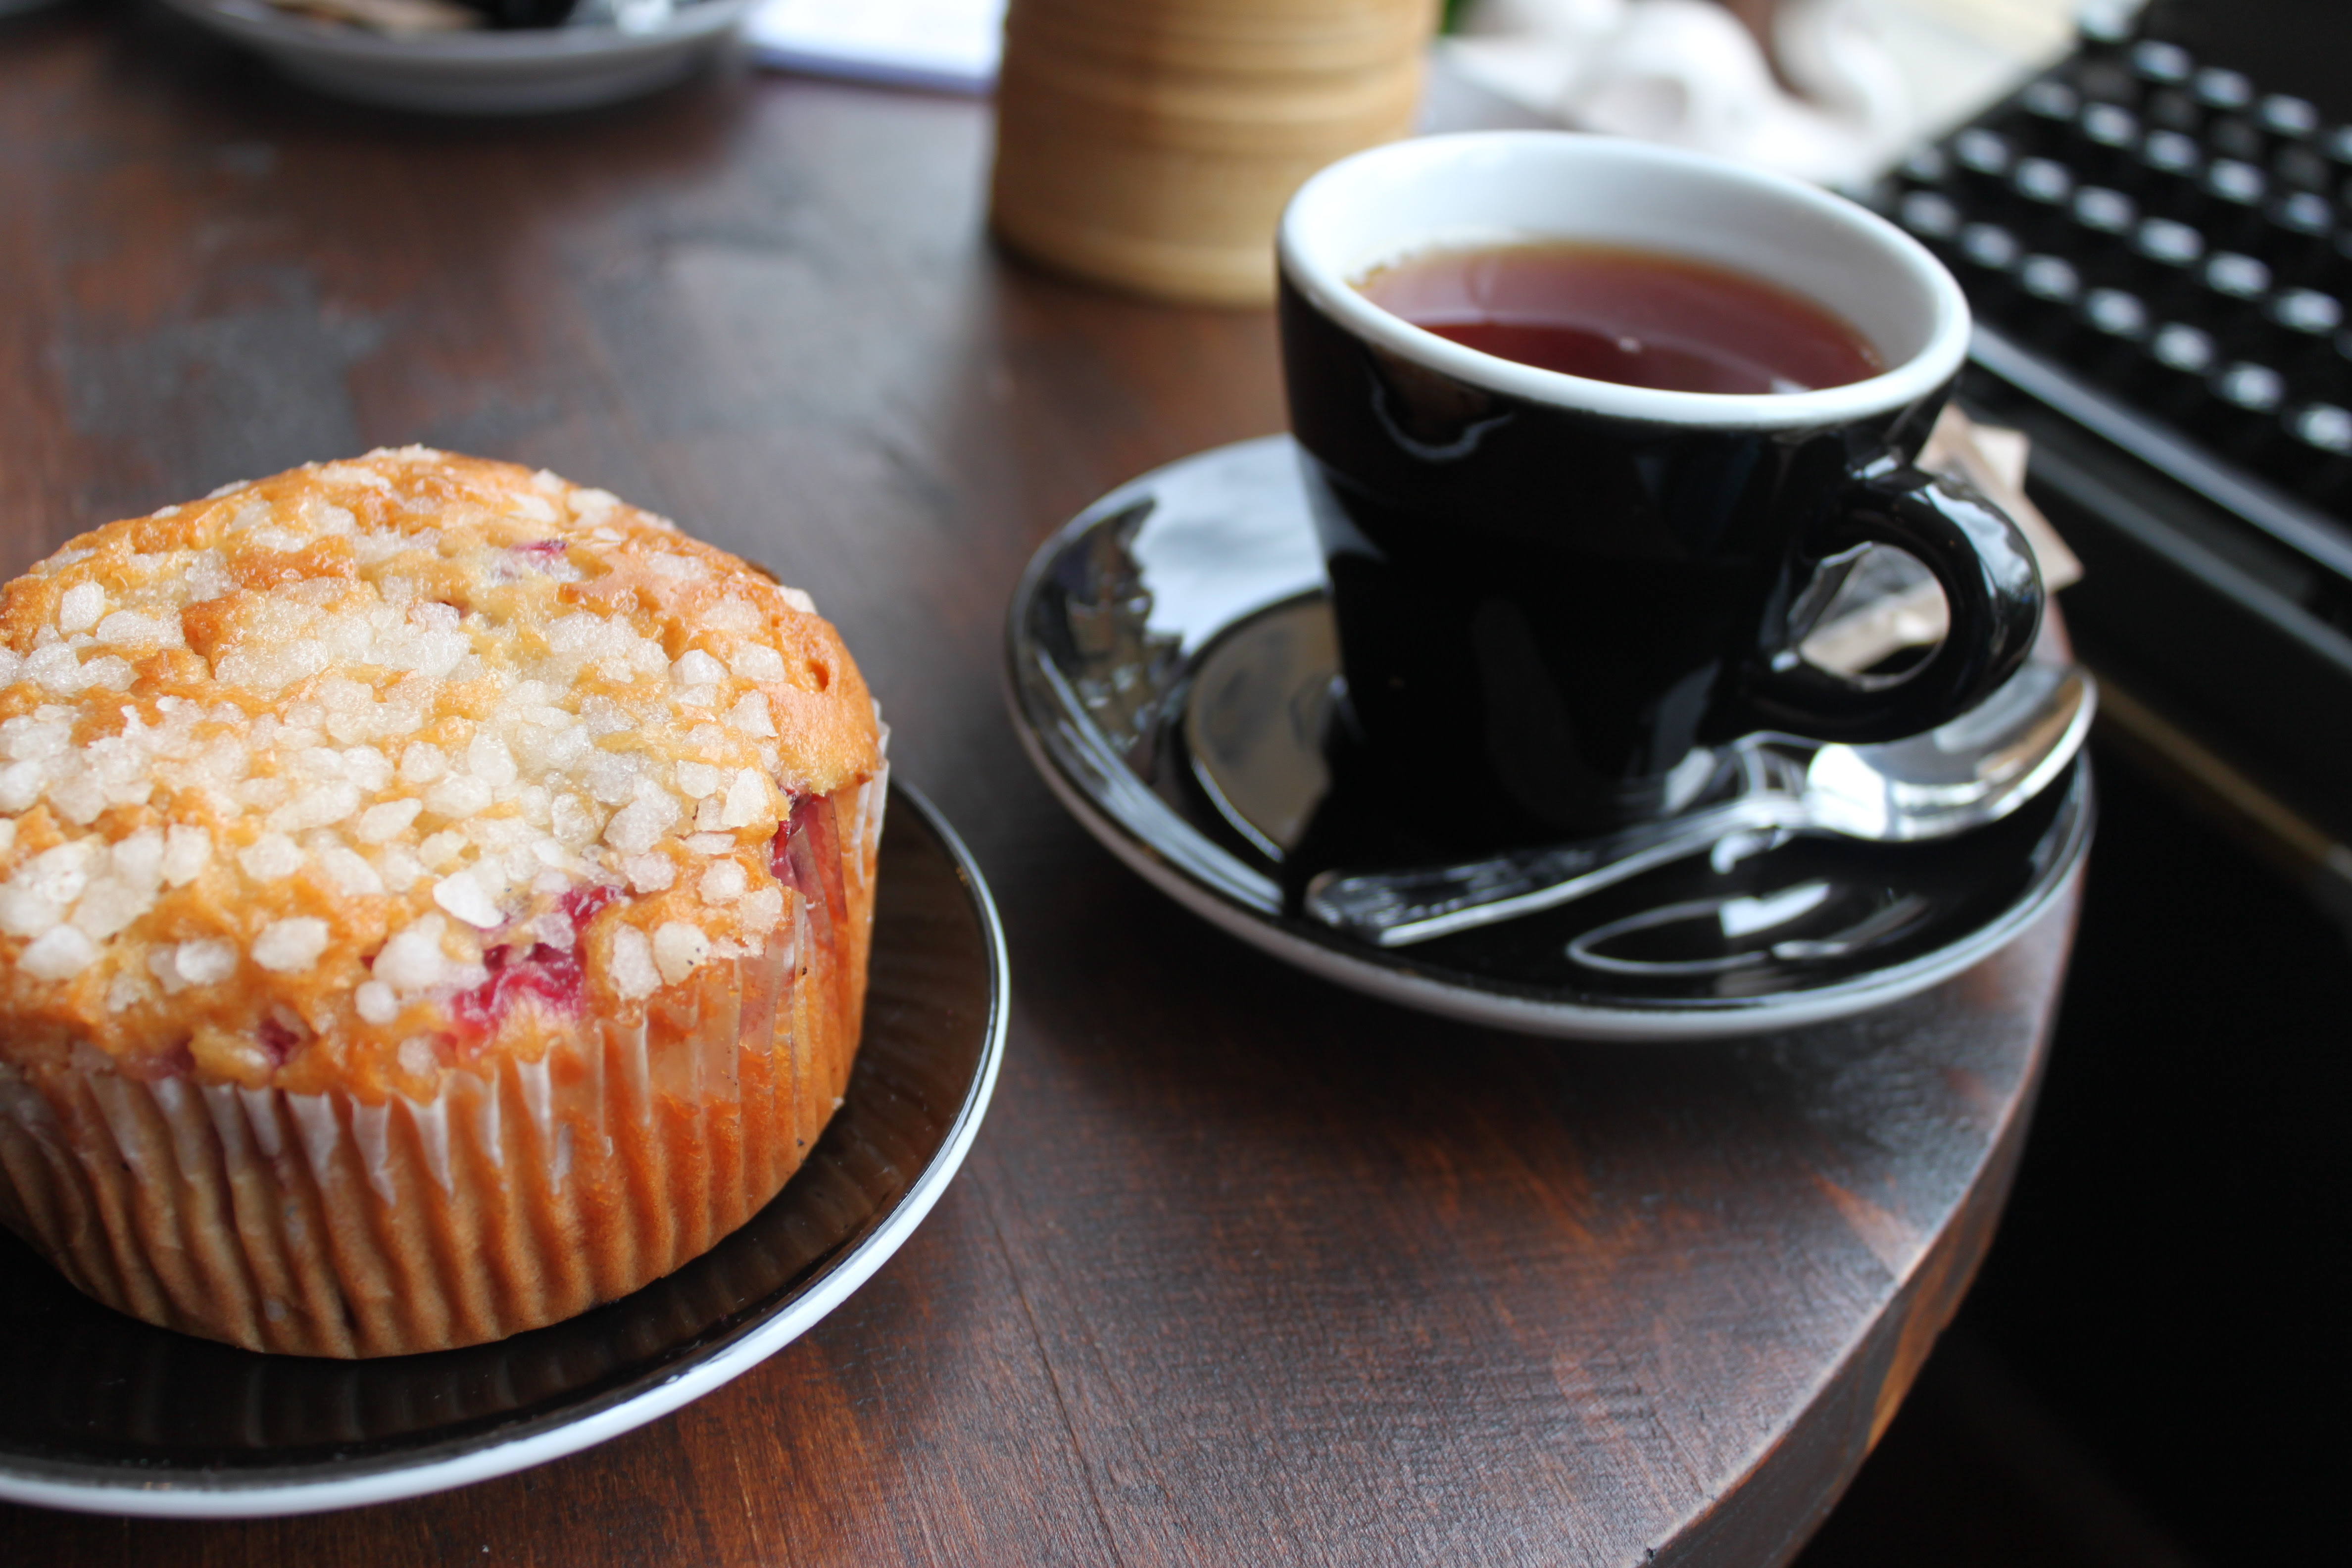 Muffin and tea (: